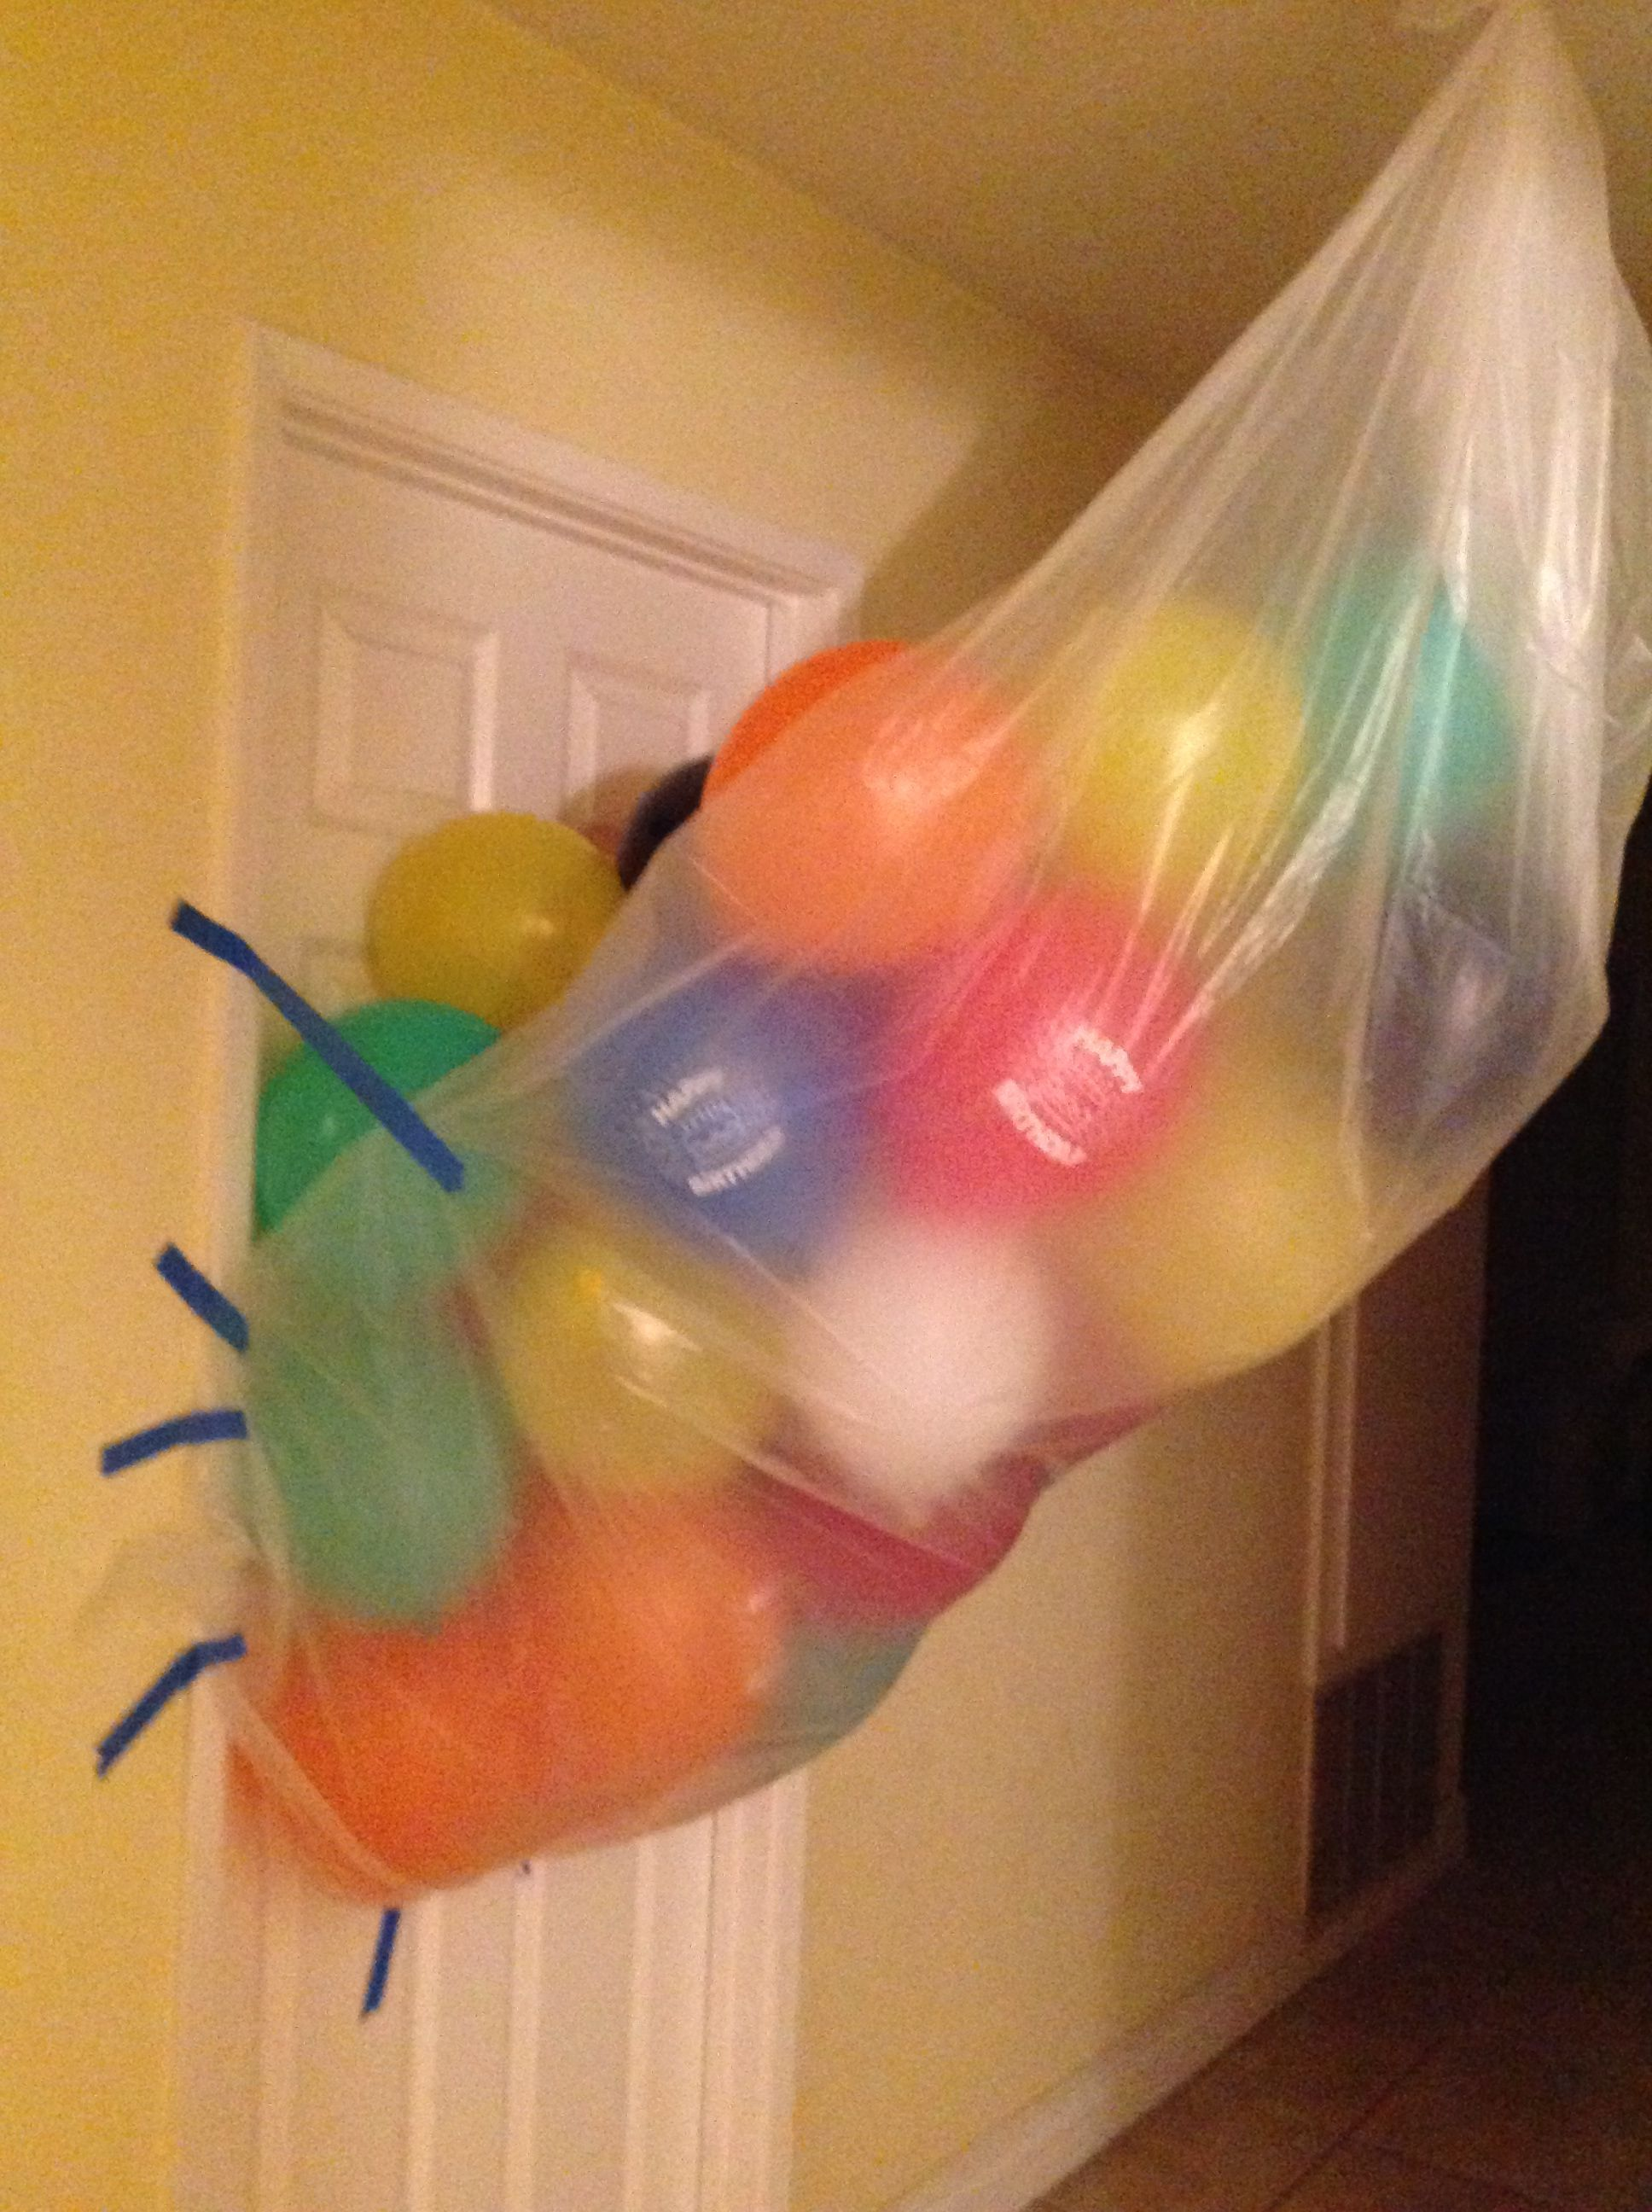 Balloon Birthday Surprise Aka Trick Saw It On Pinterest And Had To